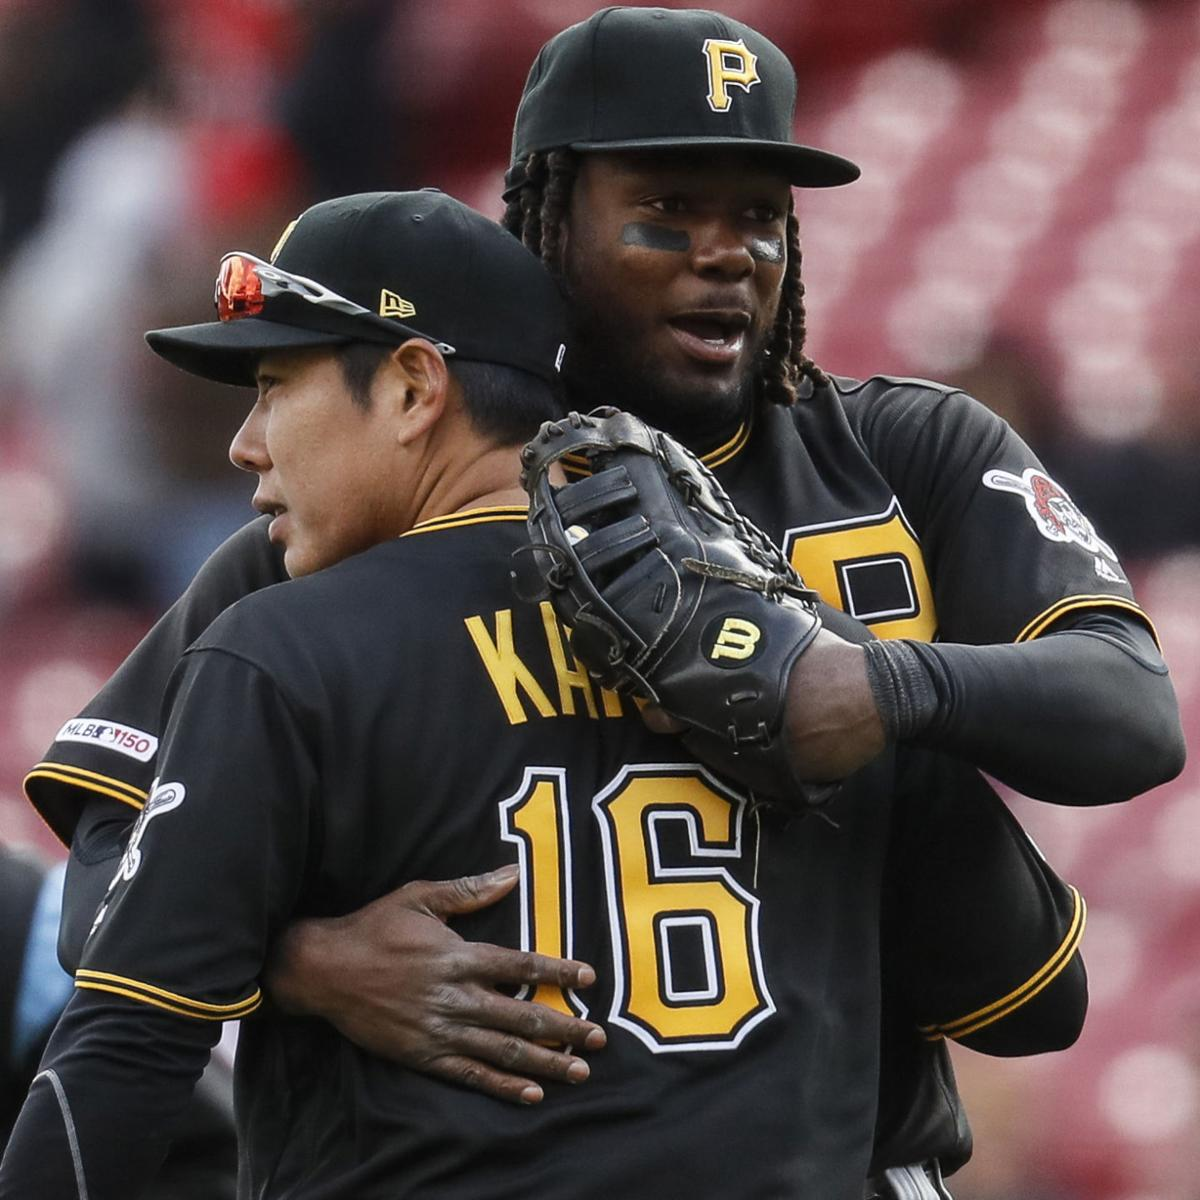 Pirates notch first win